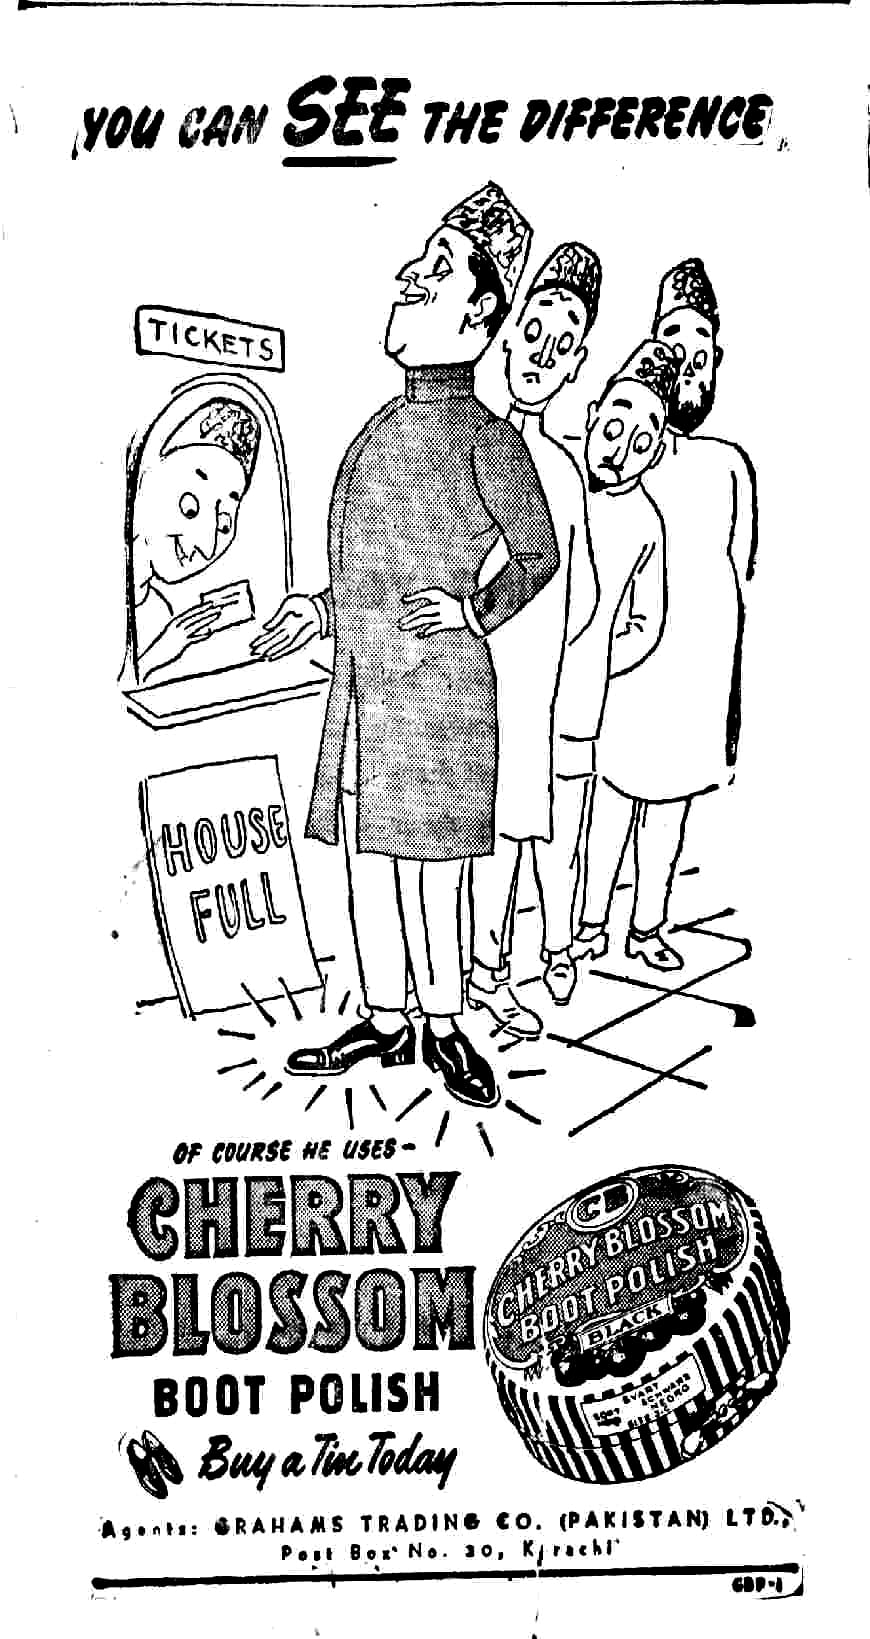 Cherry Blossom's ad from 1952